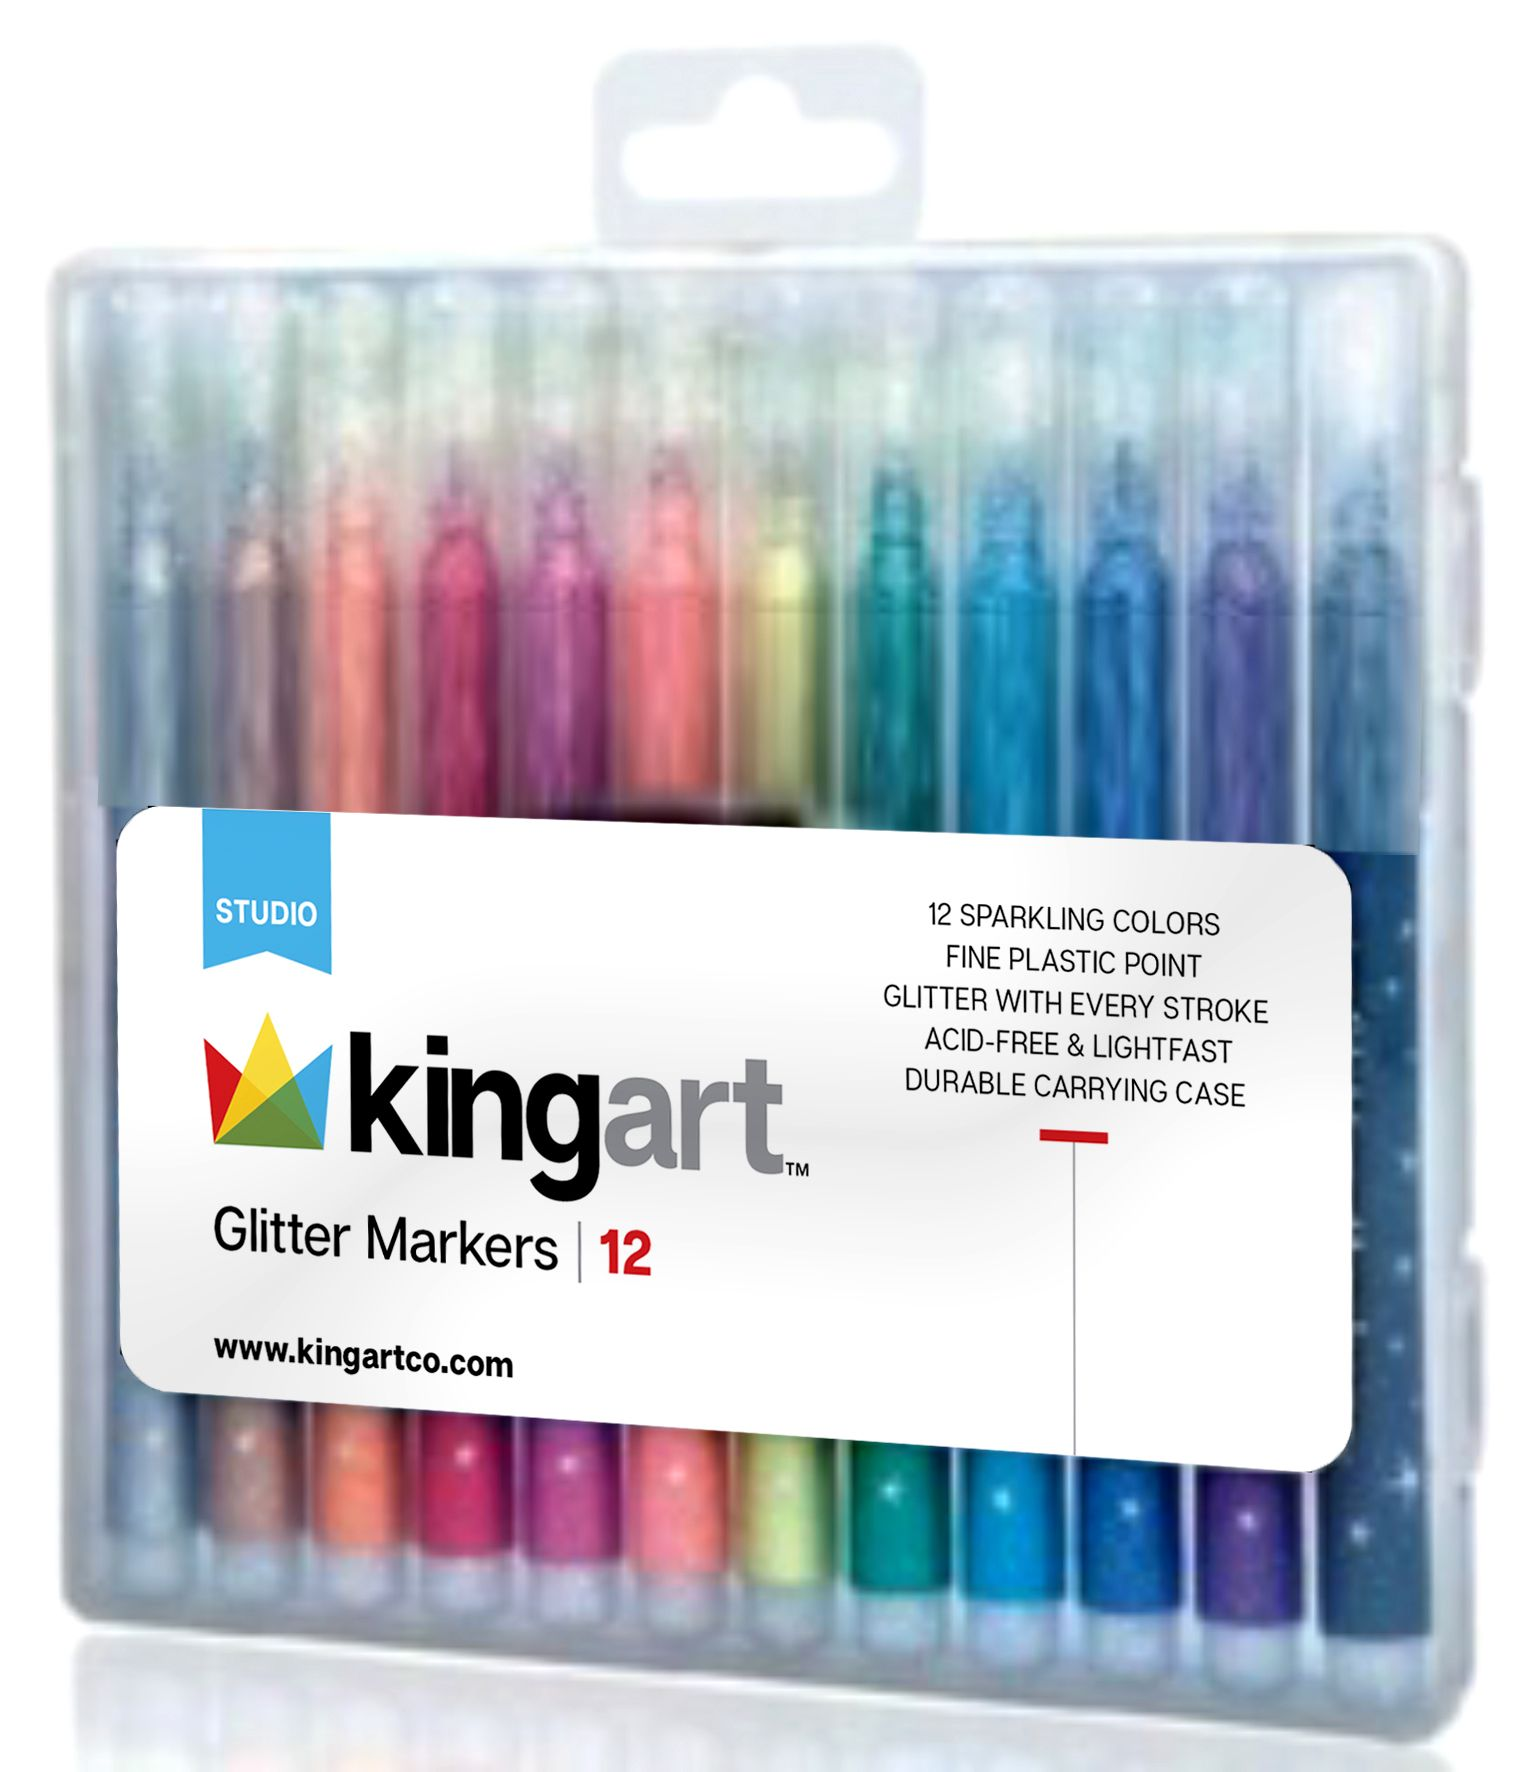 atyou Spica Glitter Pens Acid Free Archival Pigment Ink 6 Color Set 1 atyouSpica